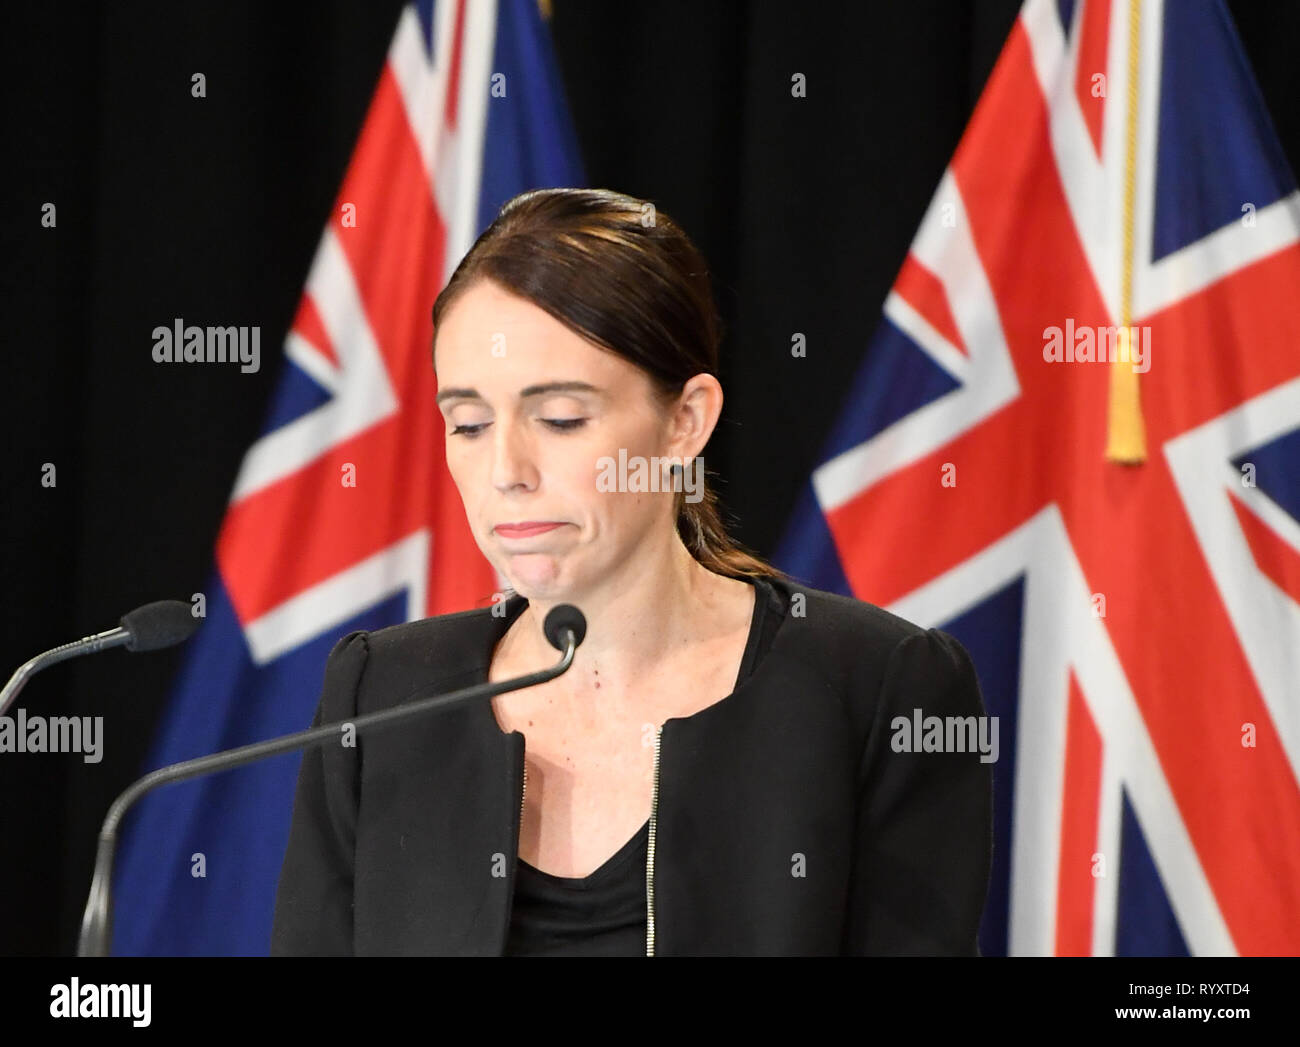 Wellington, New Zealand. 16th Mar, 2019. New Zealand Prime Minister Jacinda Ardern reacts during a briefing in Wellington, capital of New Zealand, on March 16, 2019. Jacinda Ardern reiterated to the public on Saturday morning that the country's gun law will be changed. Gunmen opened fire in two separate mosques in Christchurch on Friday, killing 49 people and wounding 48 others. Credit: Guo Lei/Xinhua/Alamy Live News - Stock Image